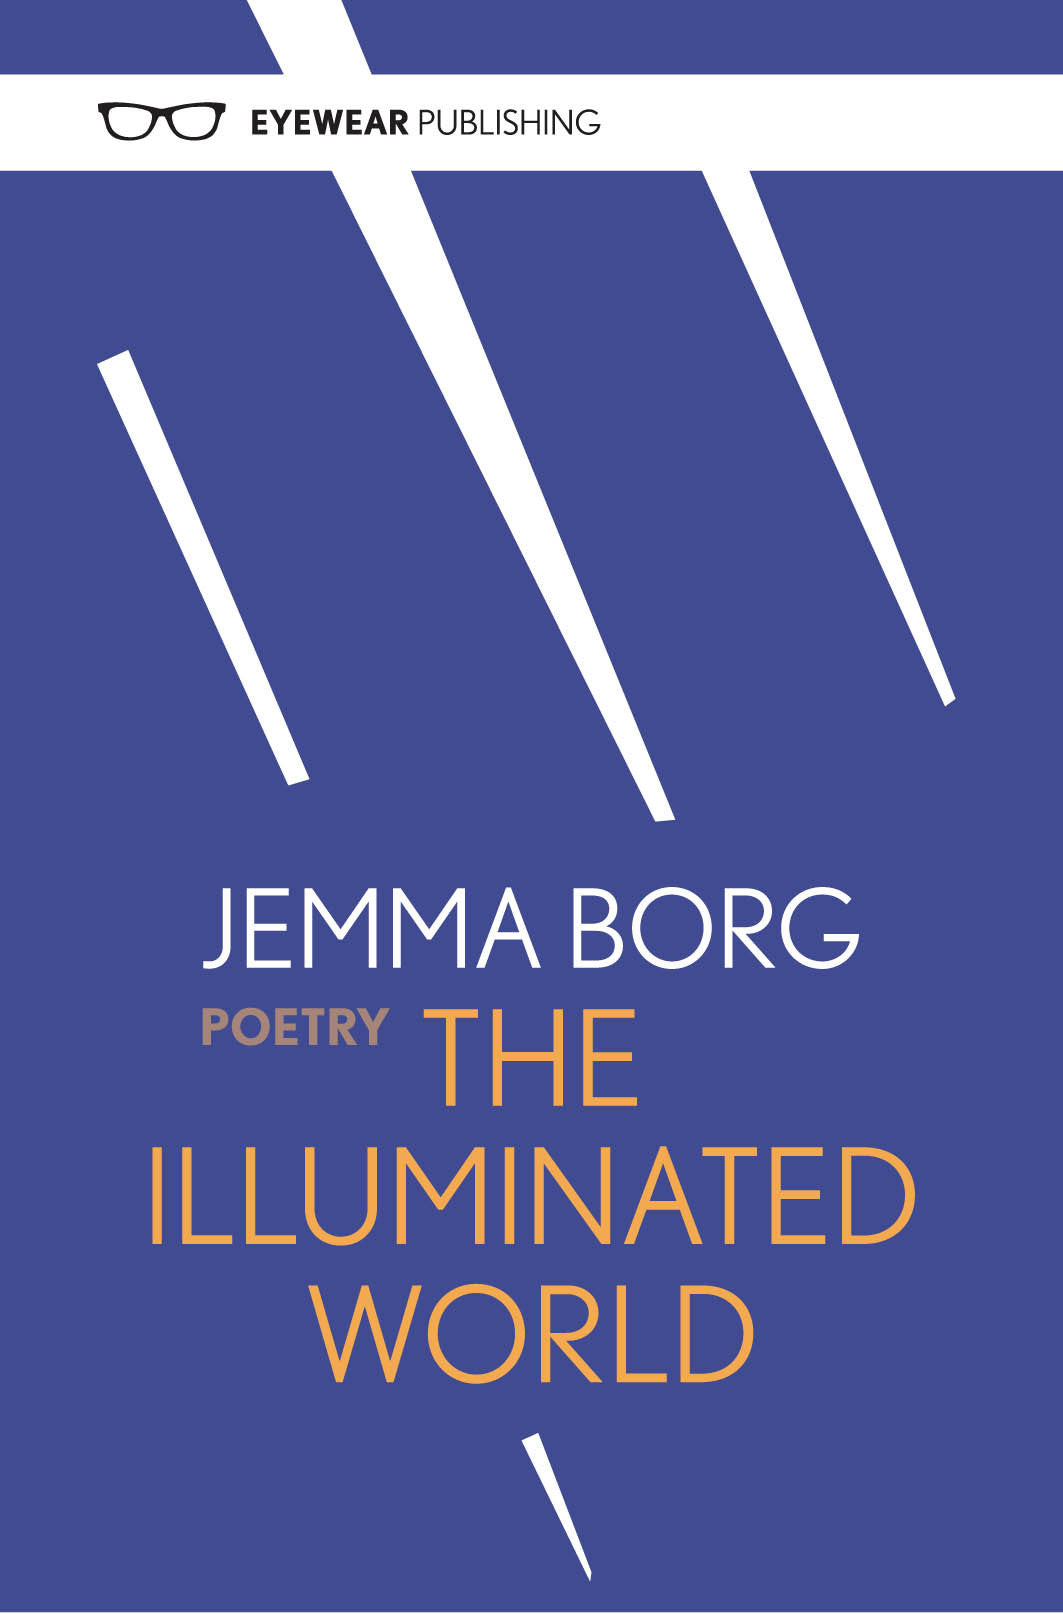 The Illuminated World by Jemma Borg